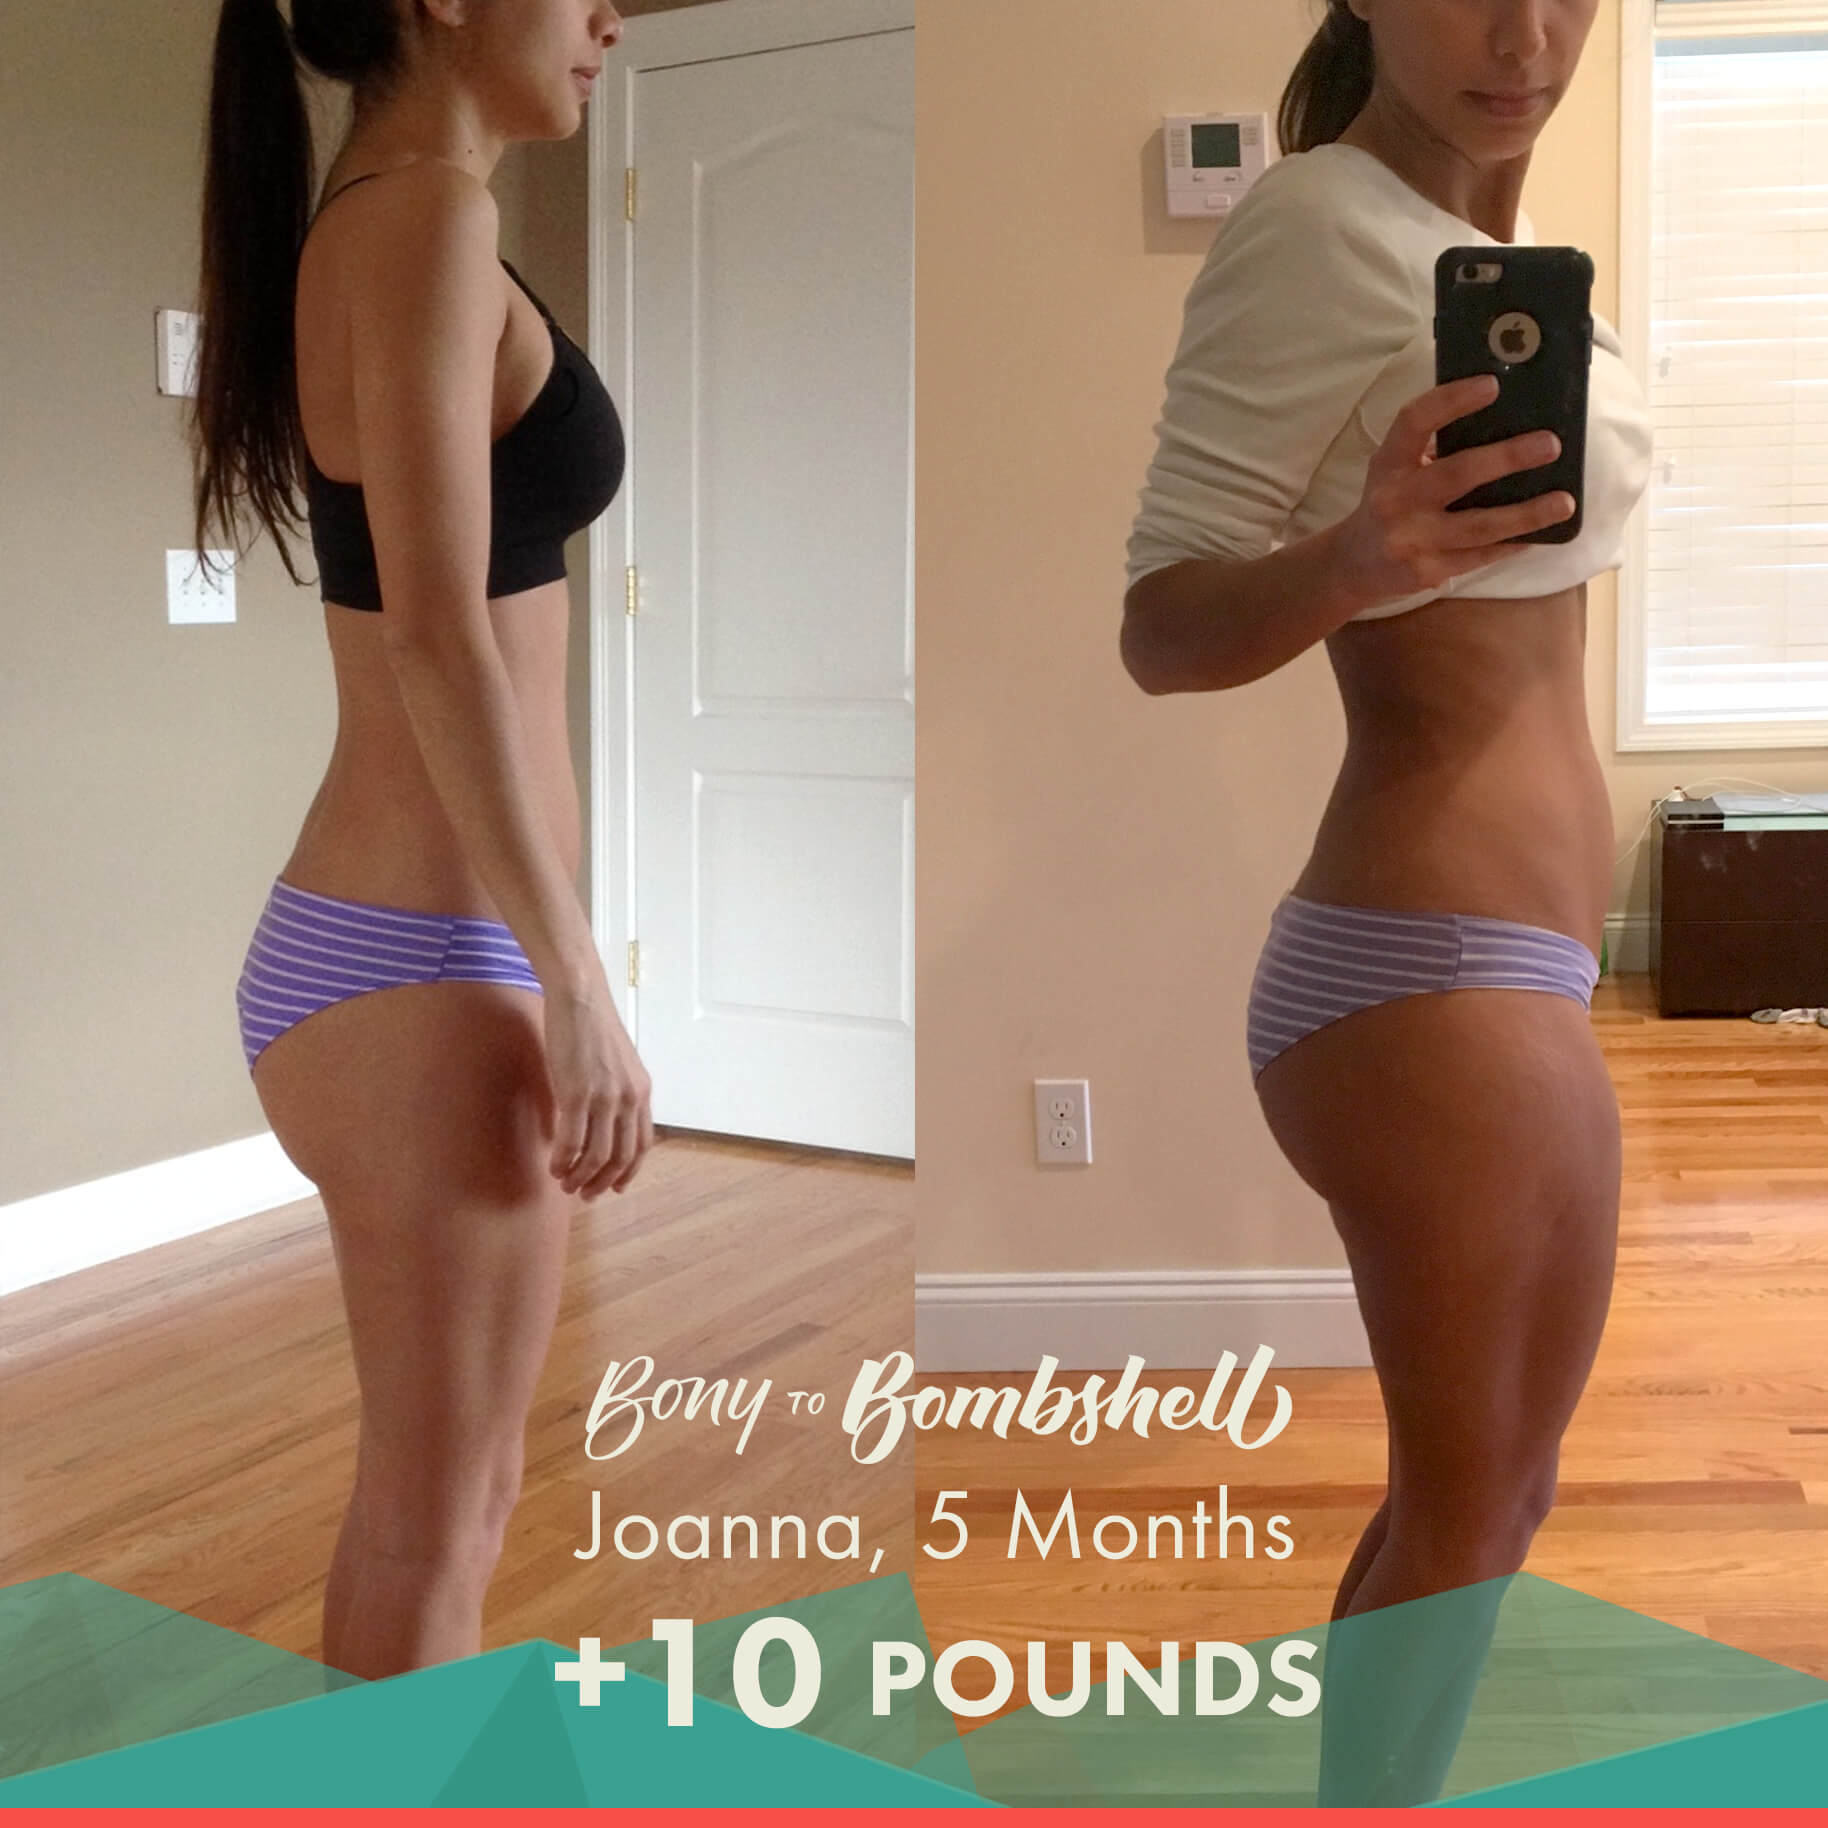 joanna-glute-butt-woman-weight-gain-10-pounds-before-after-female-thin-bombshell